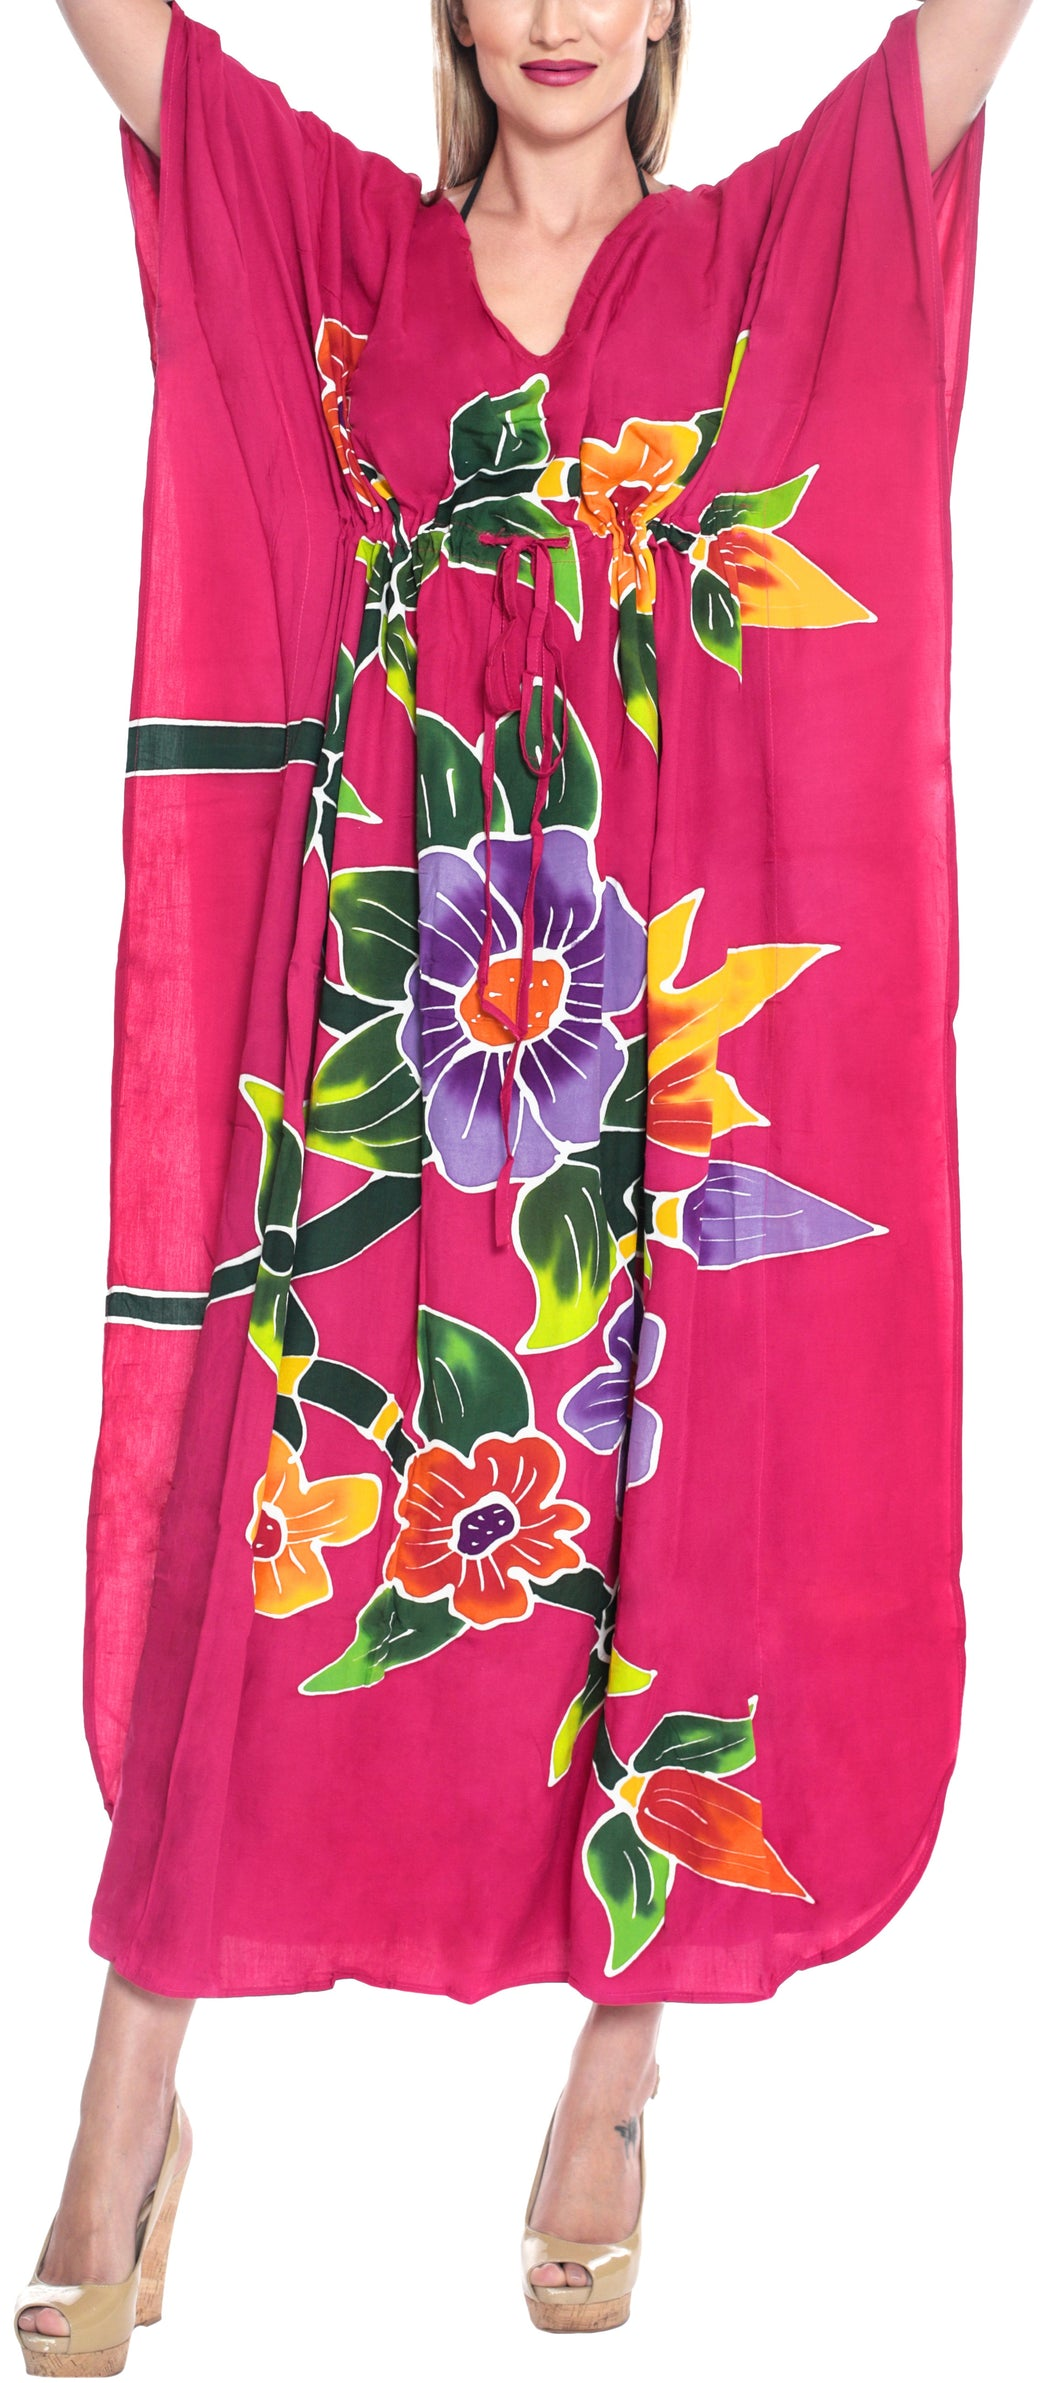 la-leela-lounge-rayon-printed-cover-up-swimwear-boho-long-caftan-pink-243-one-size